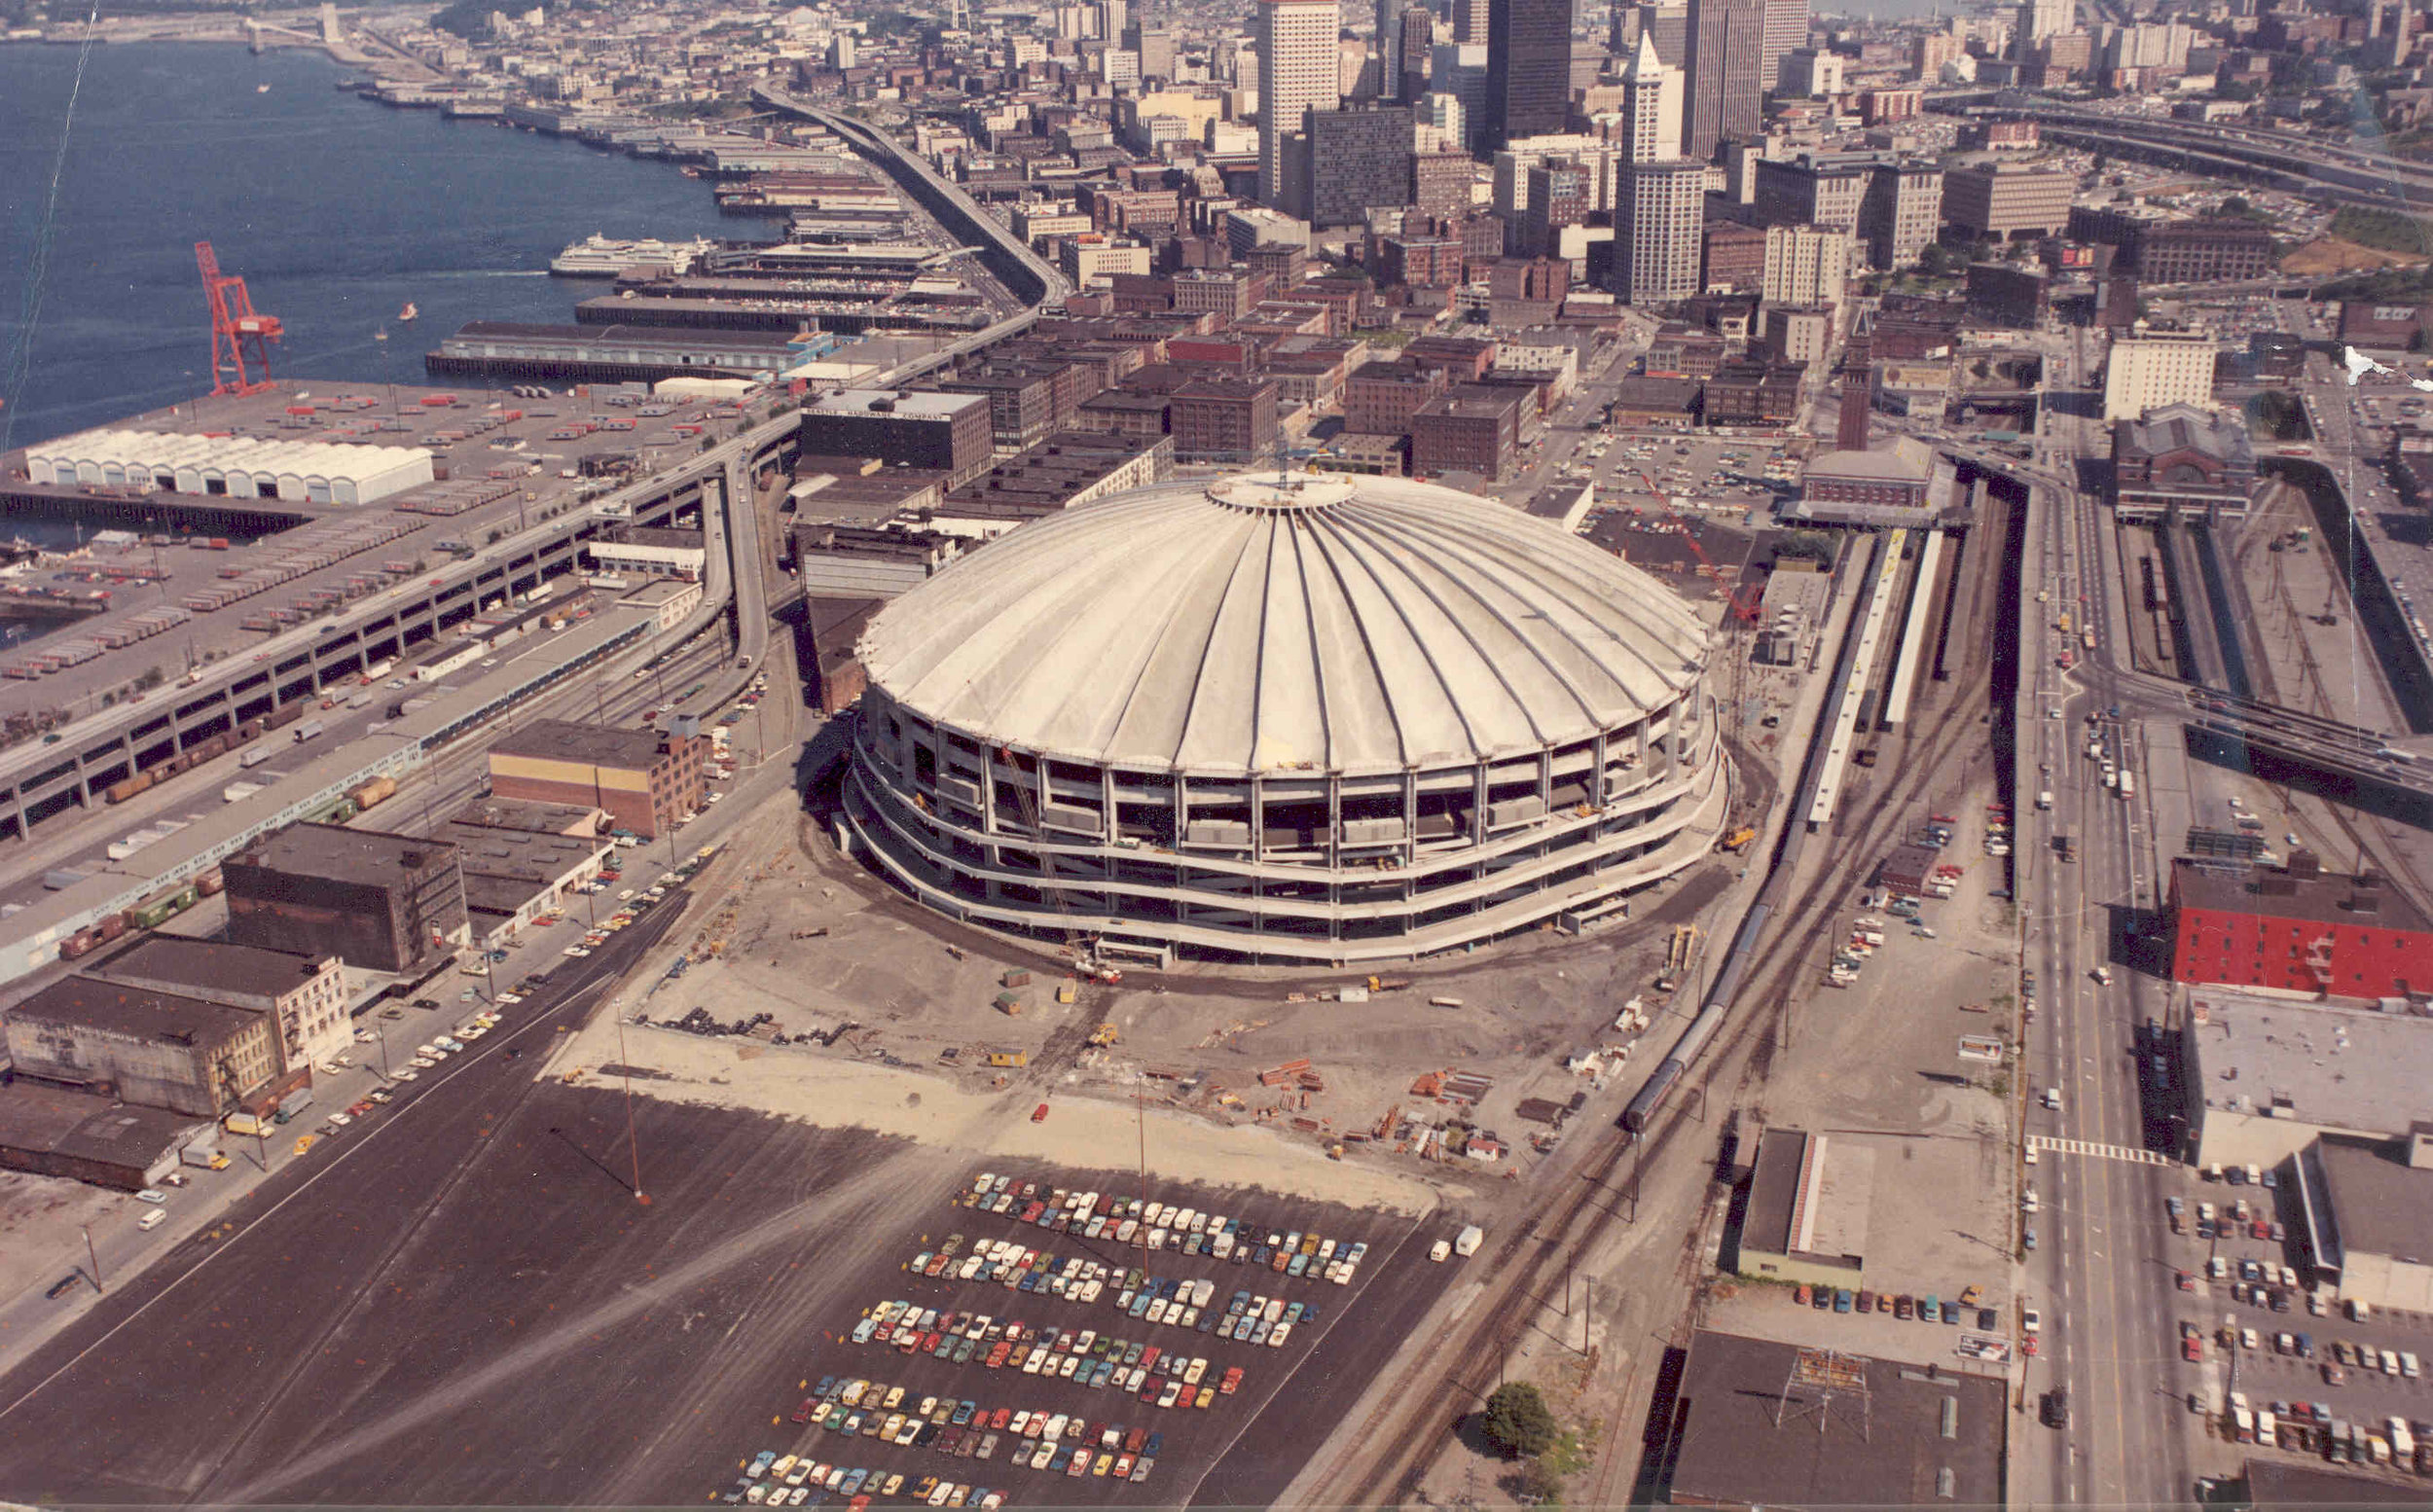 Figure 1. Kingdome under construction, 1975. King County Archive. The structure was imploded in 2000 when replaced by Safeco Field.